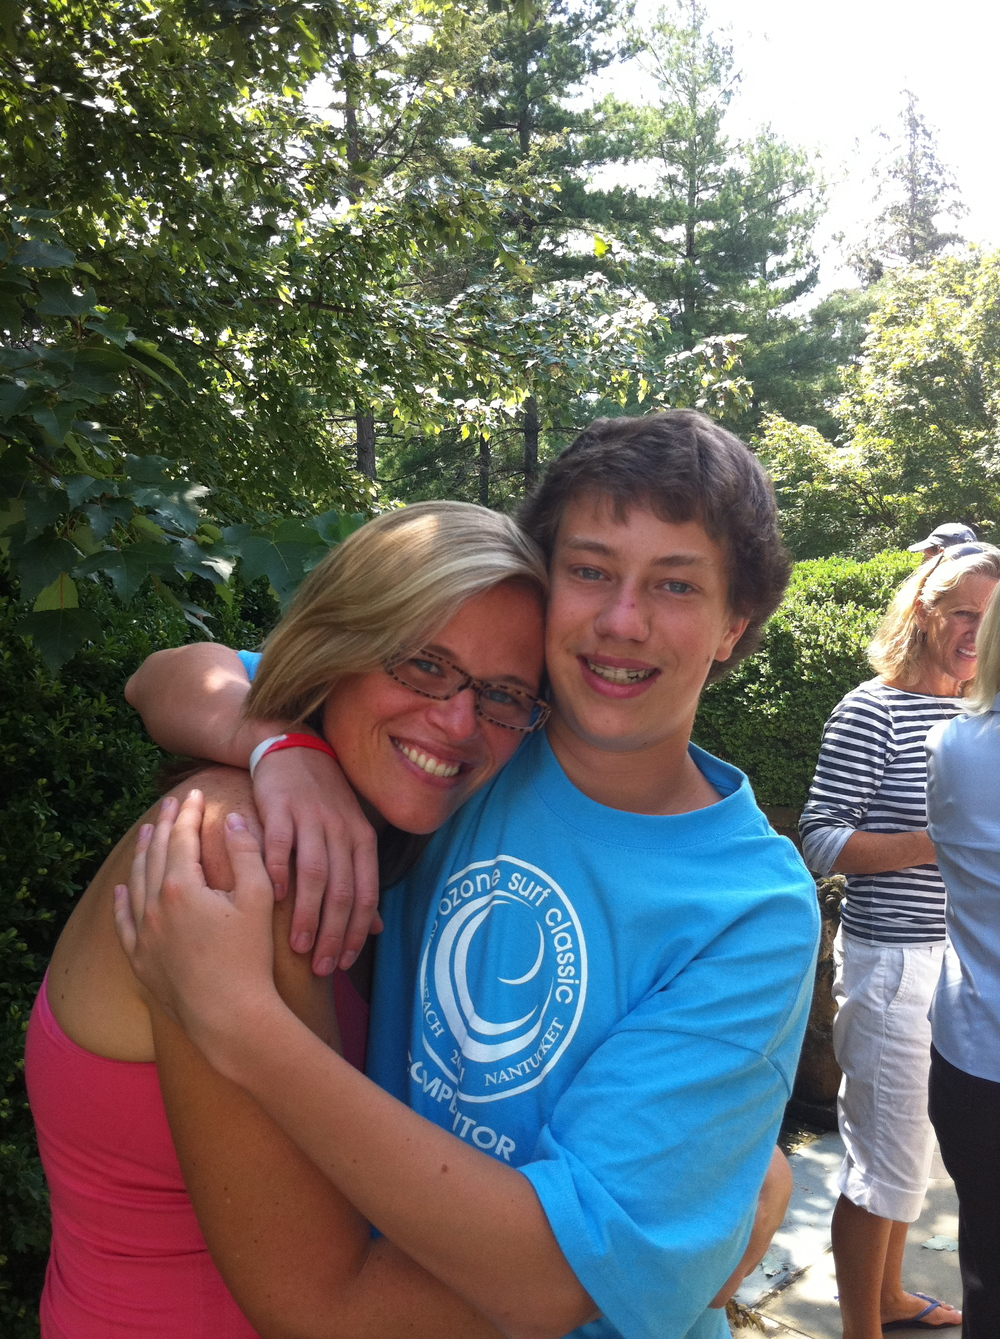 Old photo of me and Trey, he's a high school grad now headed to the University of Arizona! So proud of him.